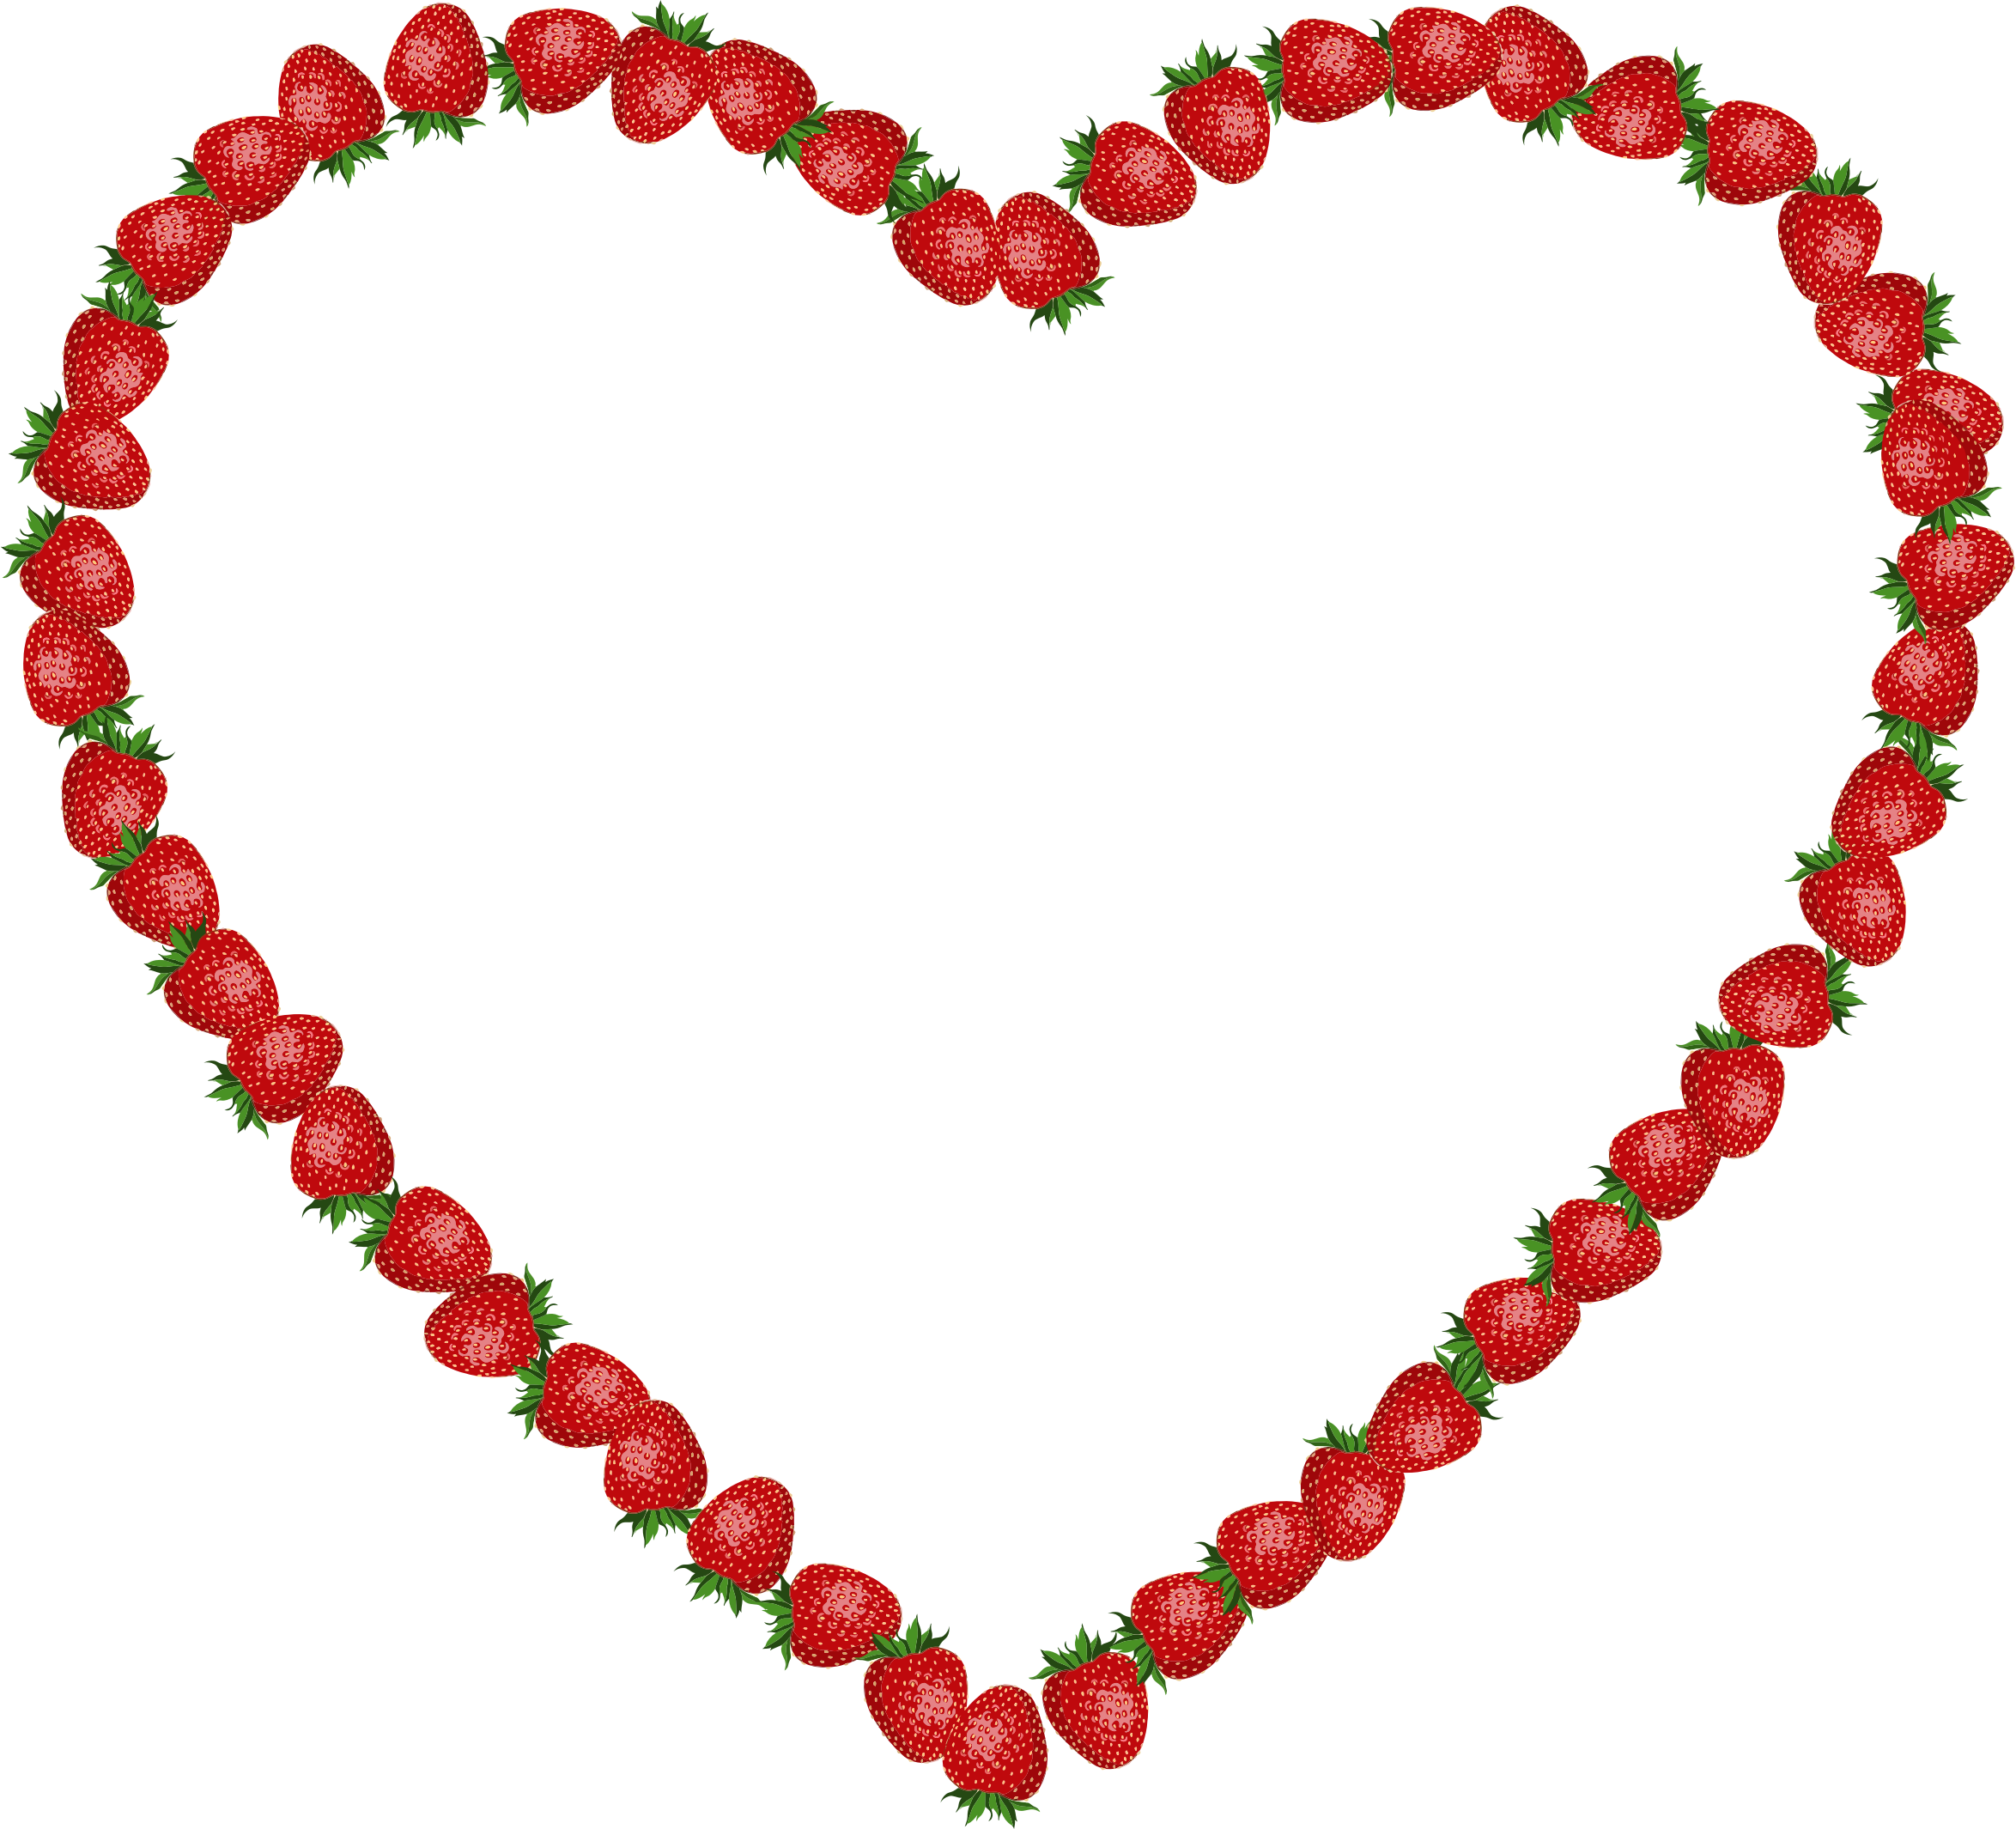 Strawberry Heart by GDJ